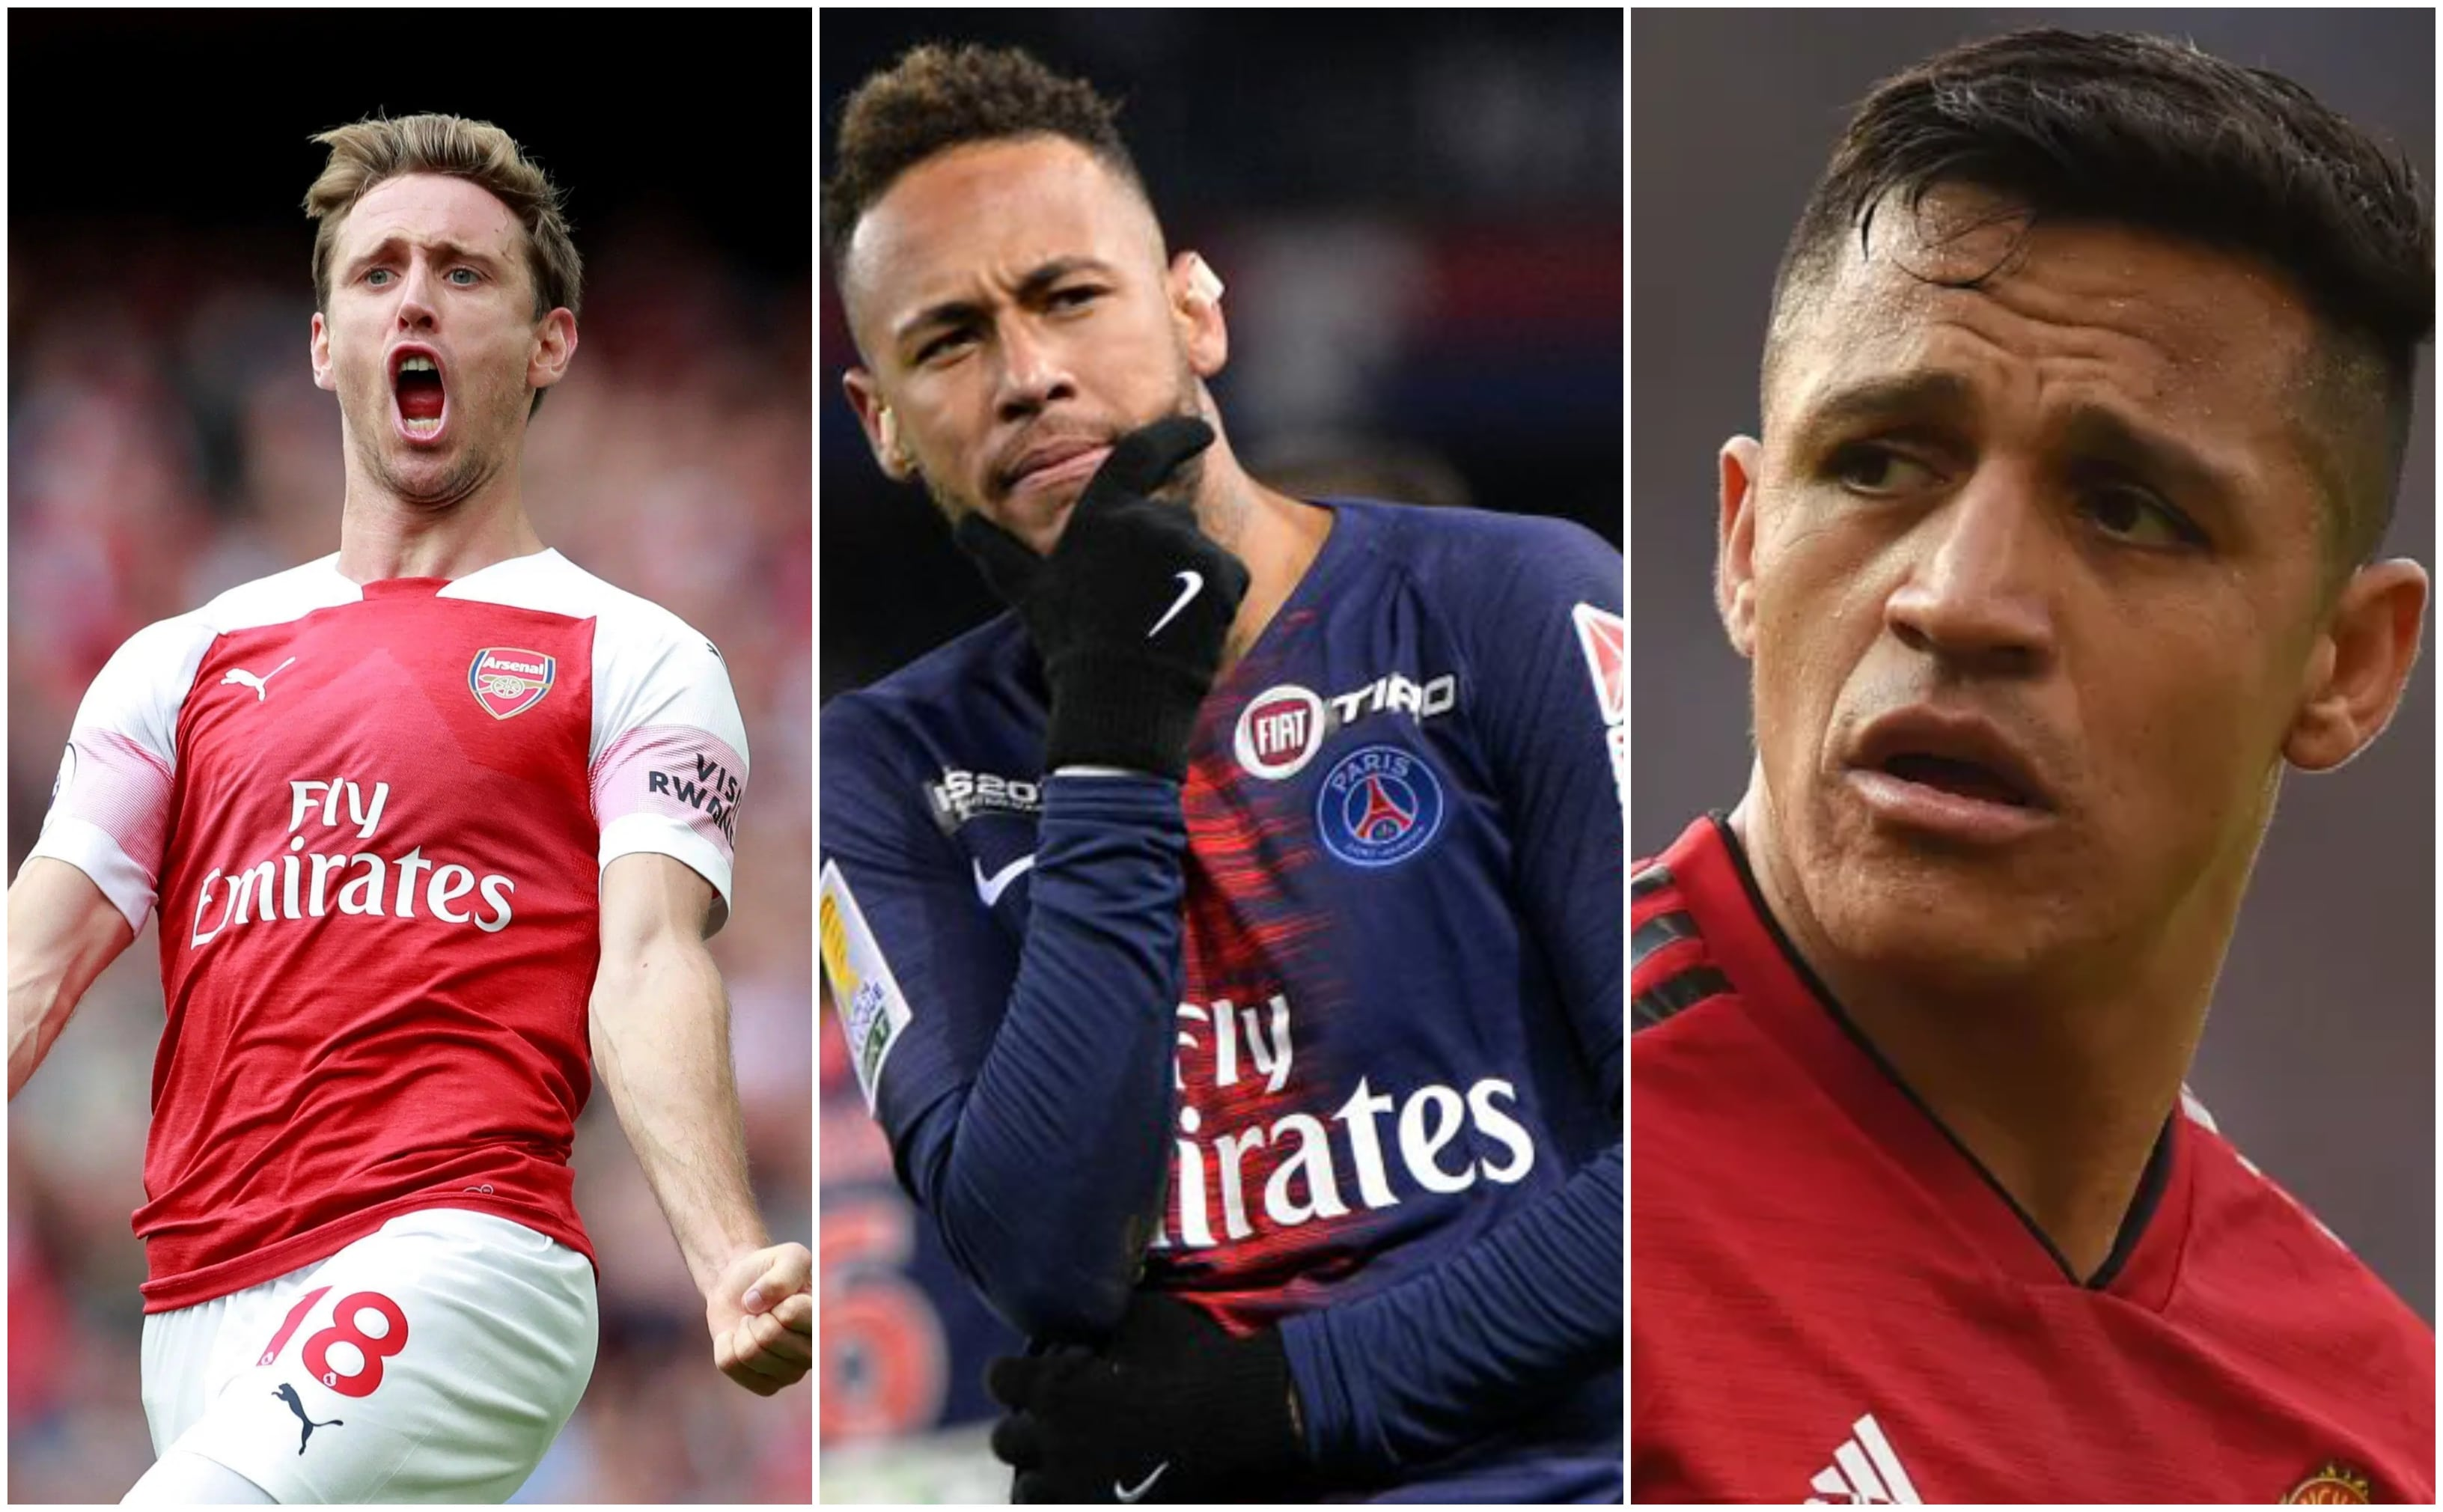 Transfer News Featuring Arsenal, Liverpool, and Other European Clubs